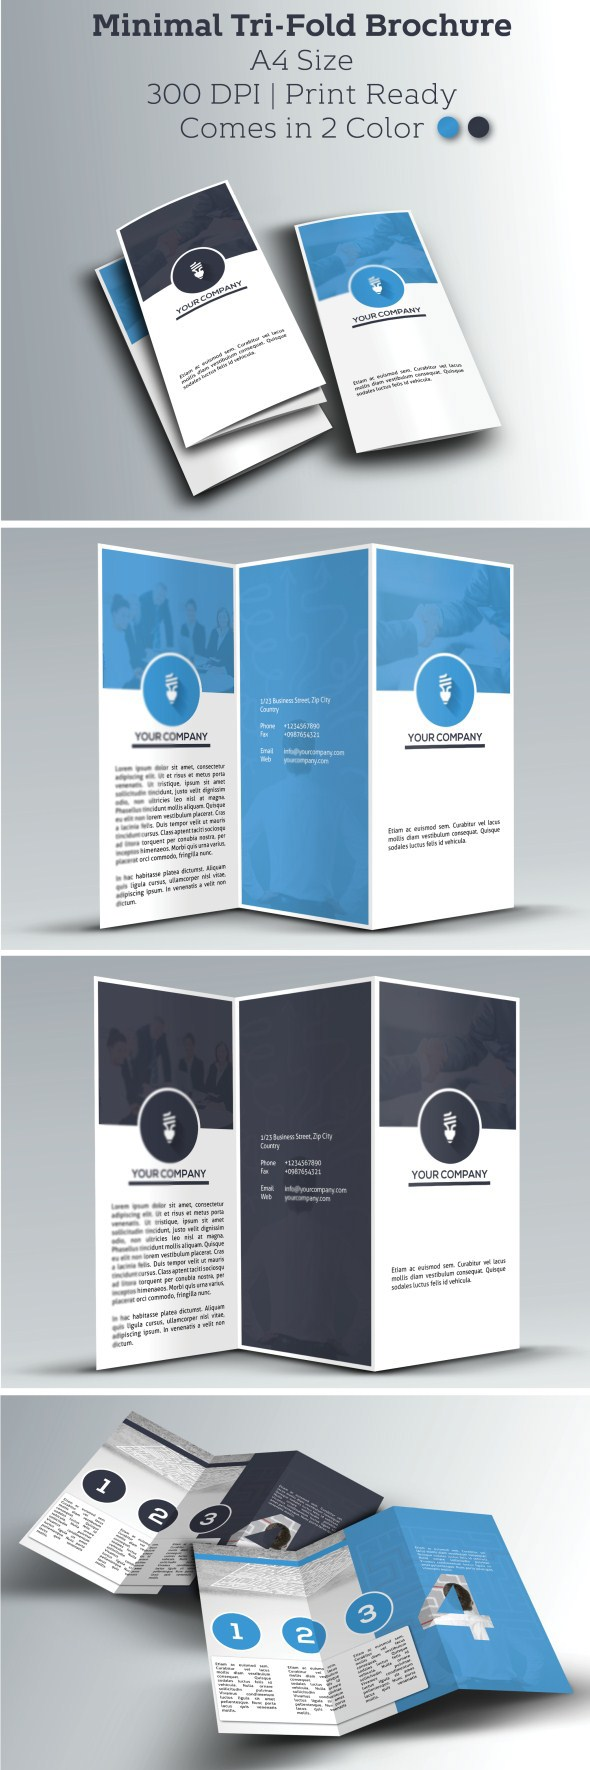 Simple Corporate Clean And Print Ready Tri Fold Brochure This Can Serve Multiple Purposes You Use To Represents Your Business